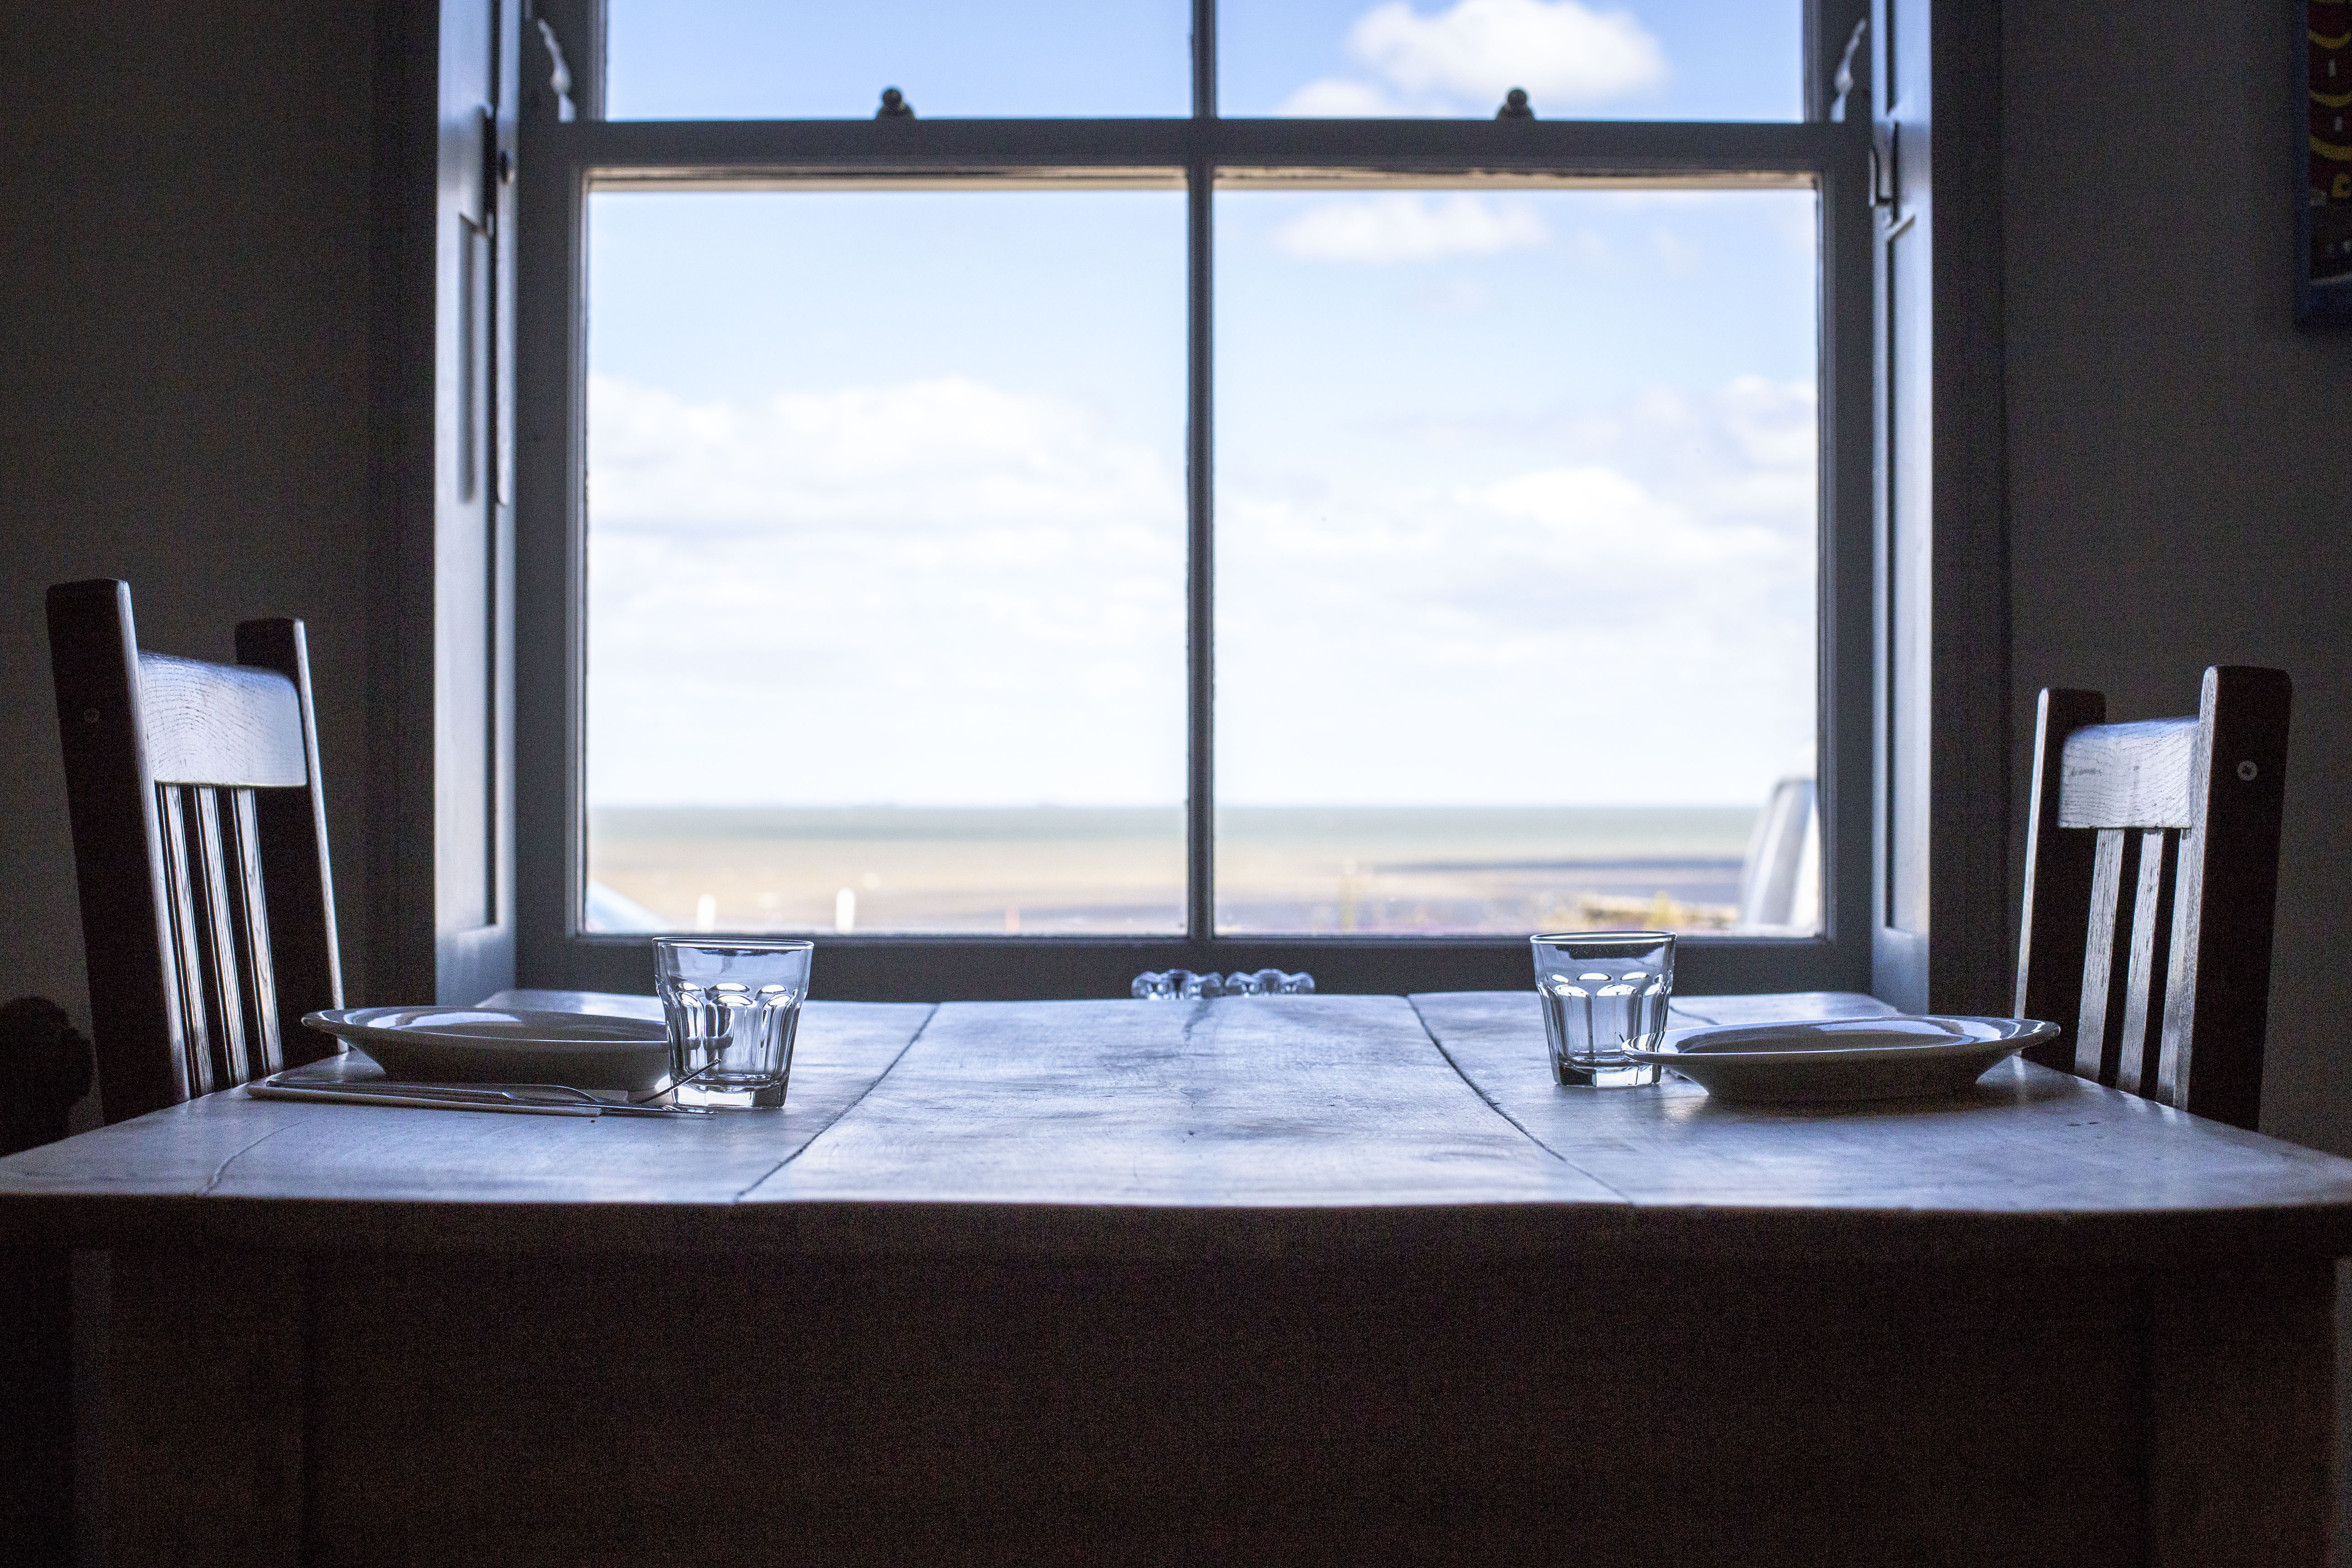 table by the window sea views dining restaurant interiors